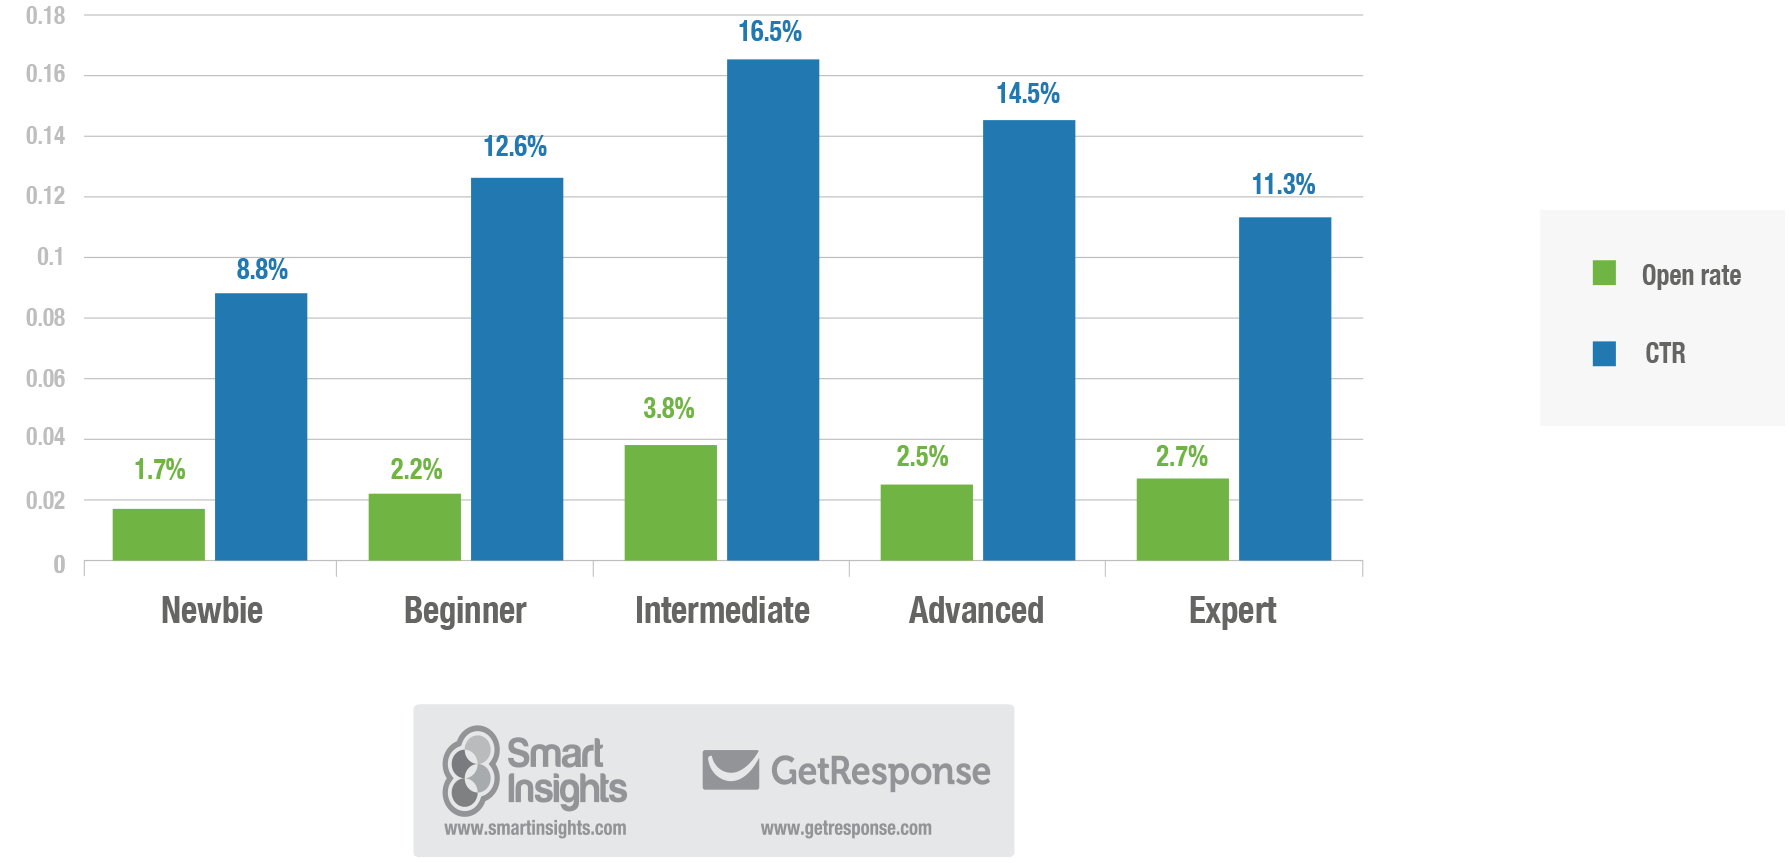 Email response rate by sophistication